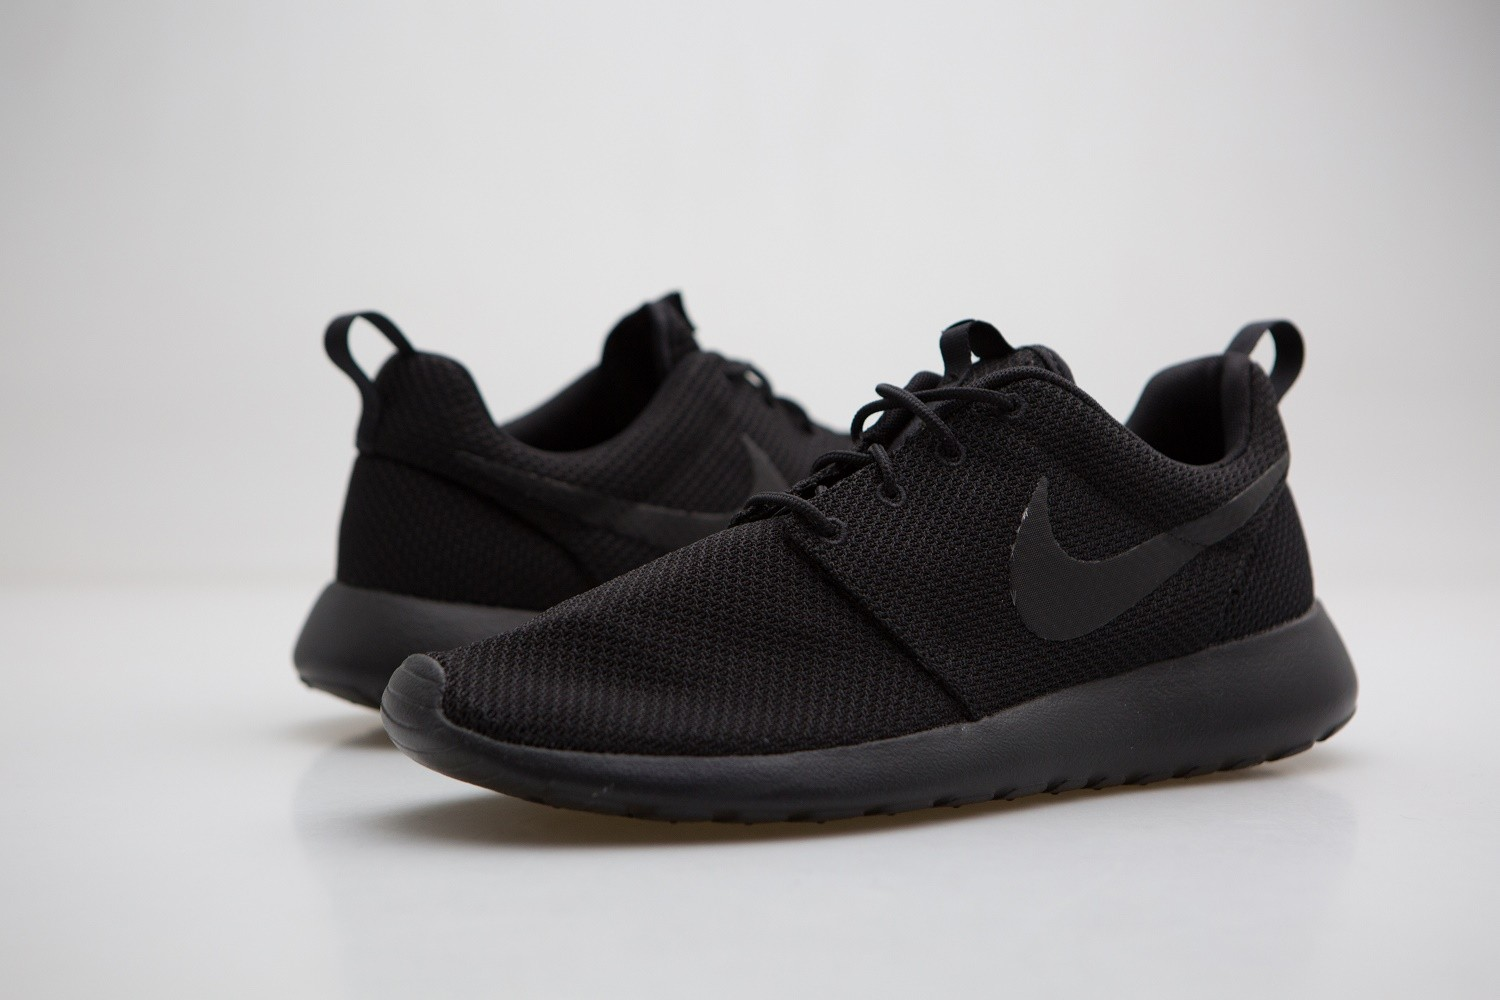 online store 4fd87 e0865 Nike Roshe One All Black Mens Size 8 SNEAKERS 511881 026